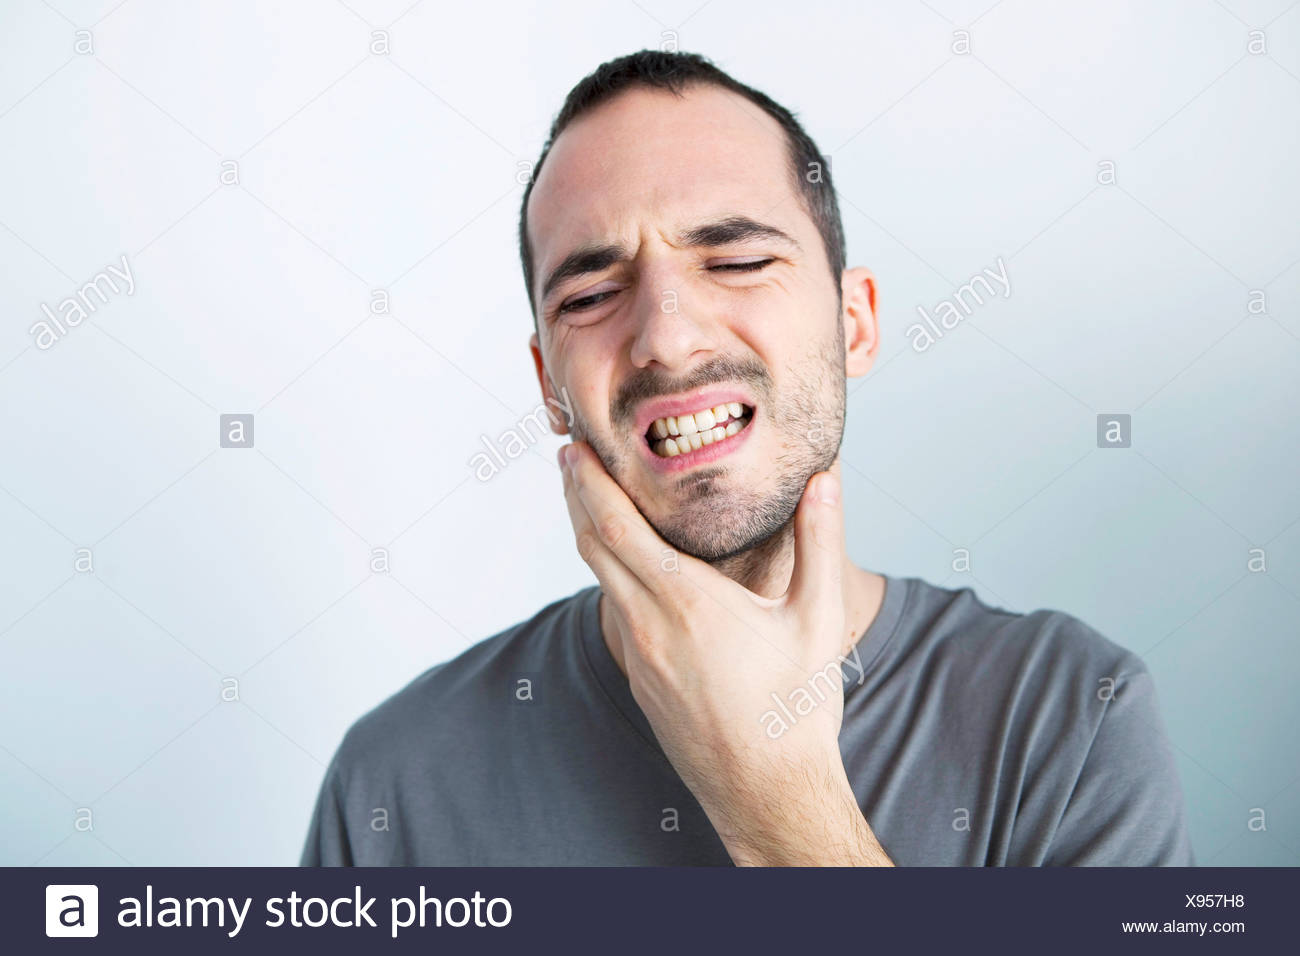 MAN WITH TOOTHACHE - Stock Image